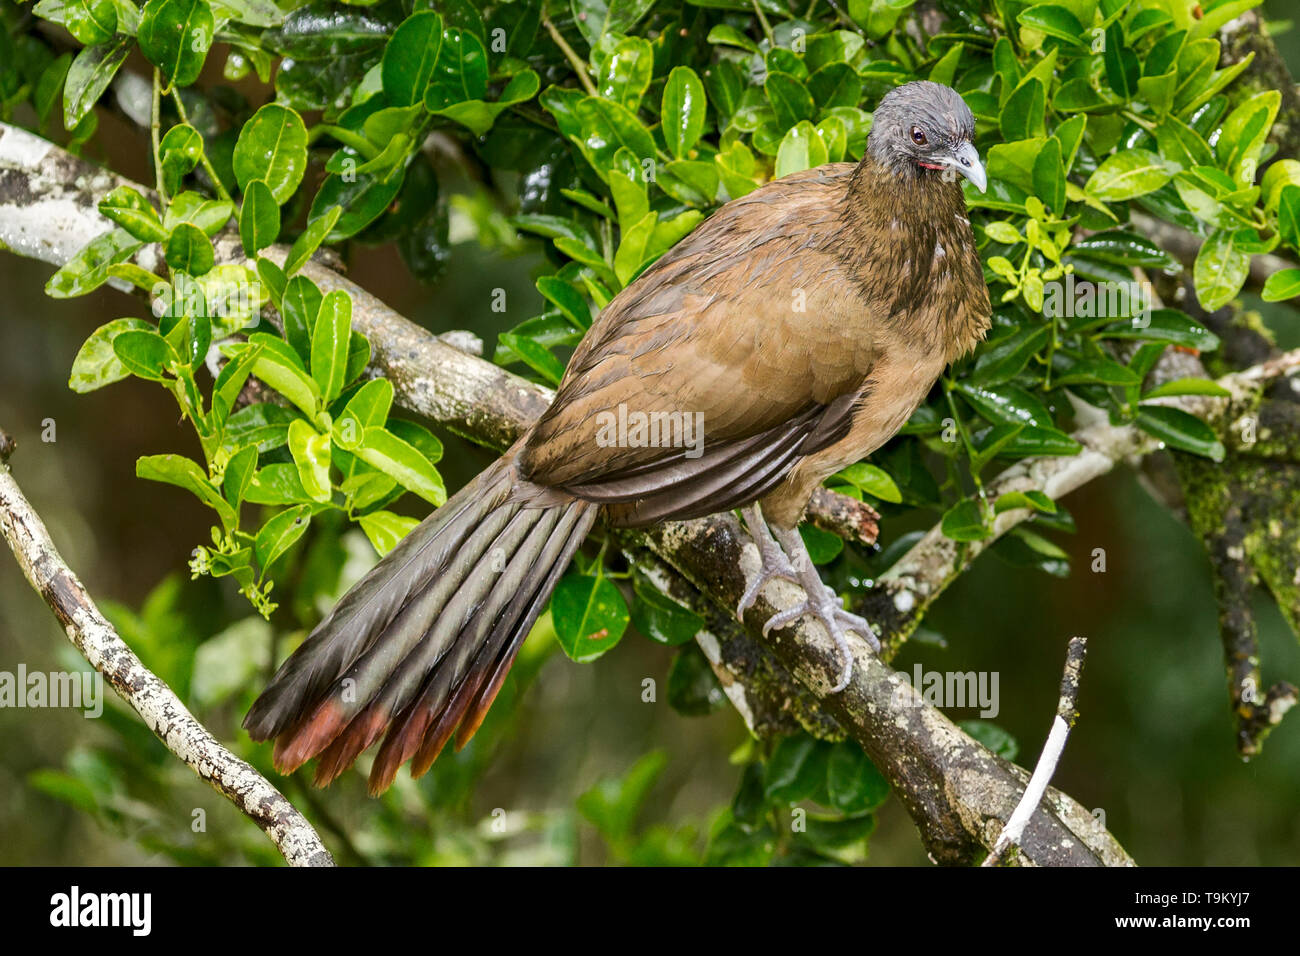 Rufous-vented Chachalaca or Cocrico, Ortalis ruficauda, in the rain. Tobago, Trinidad and Tobago - Stock Image